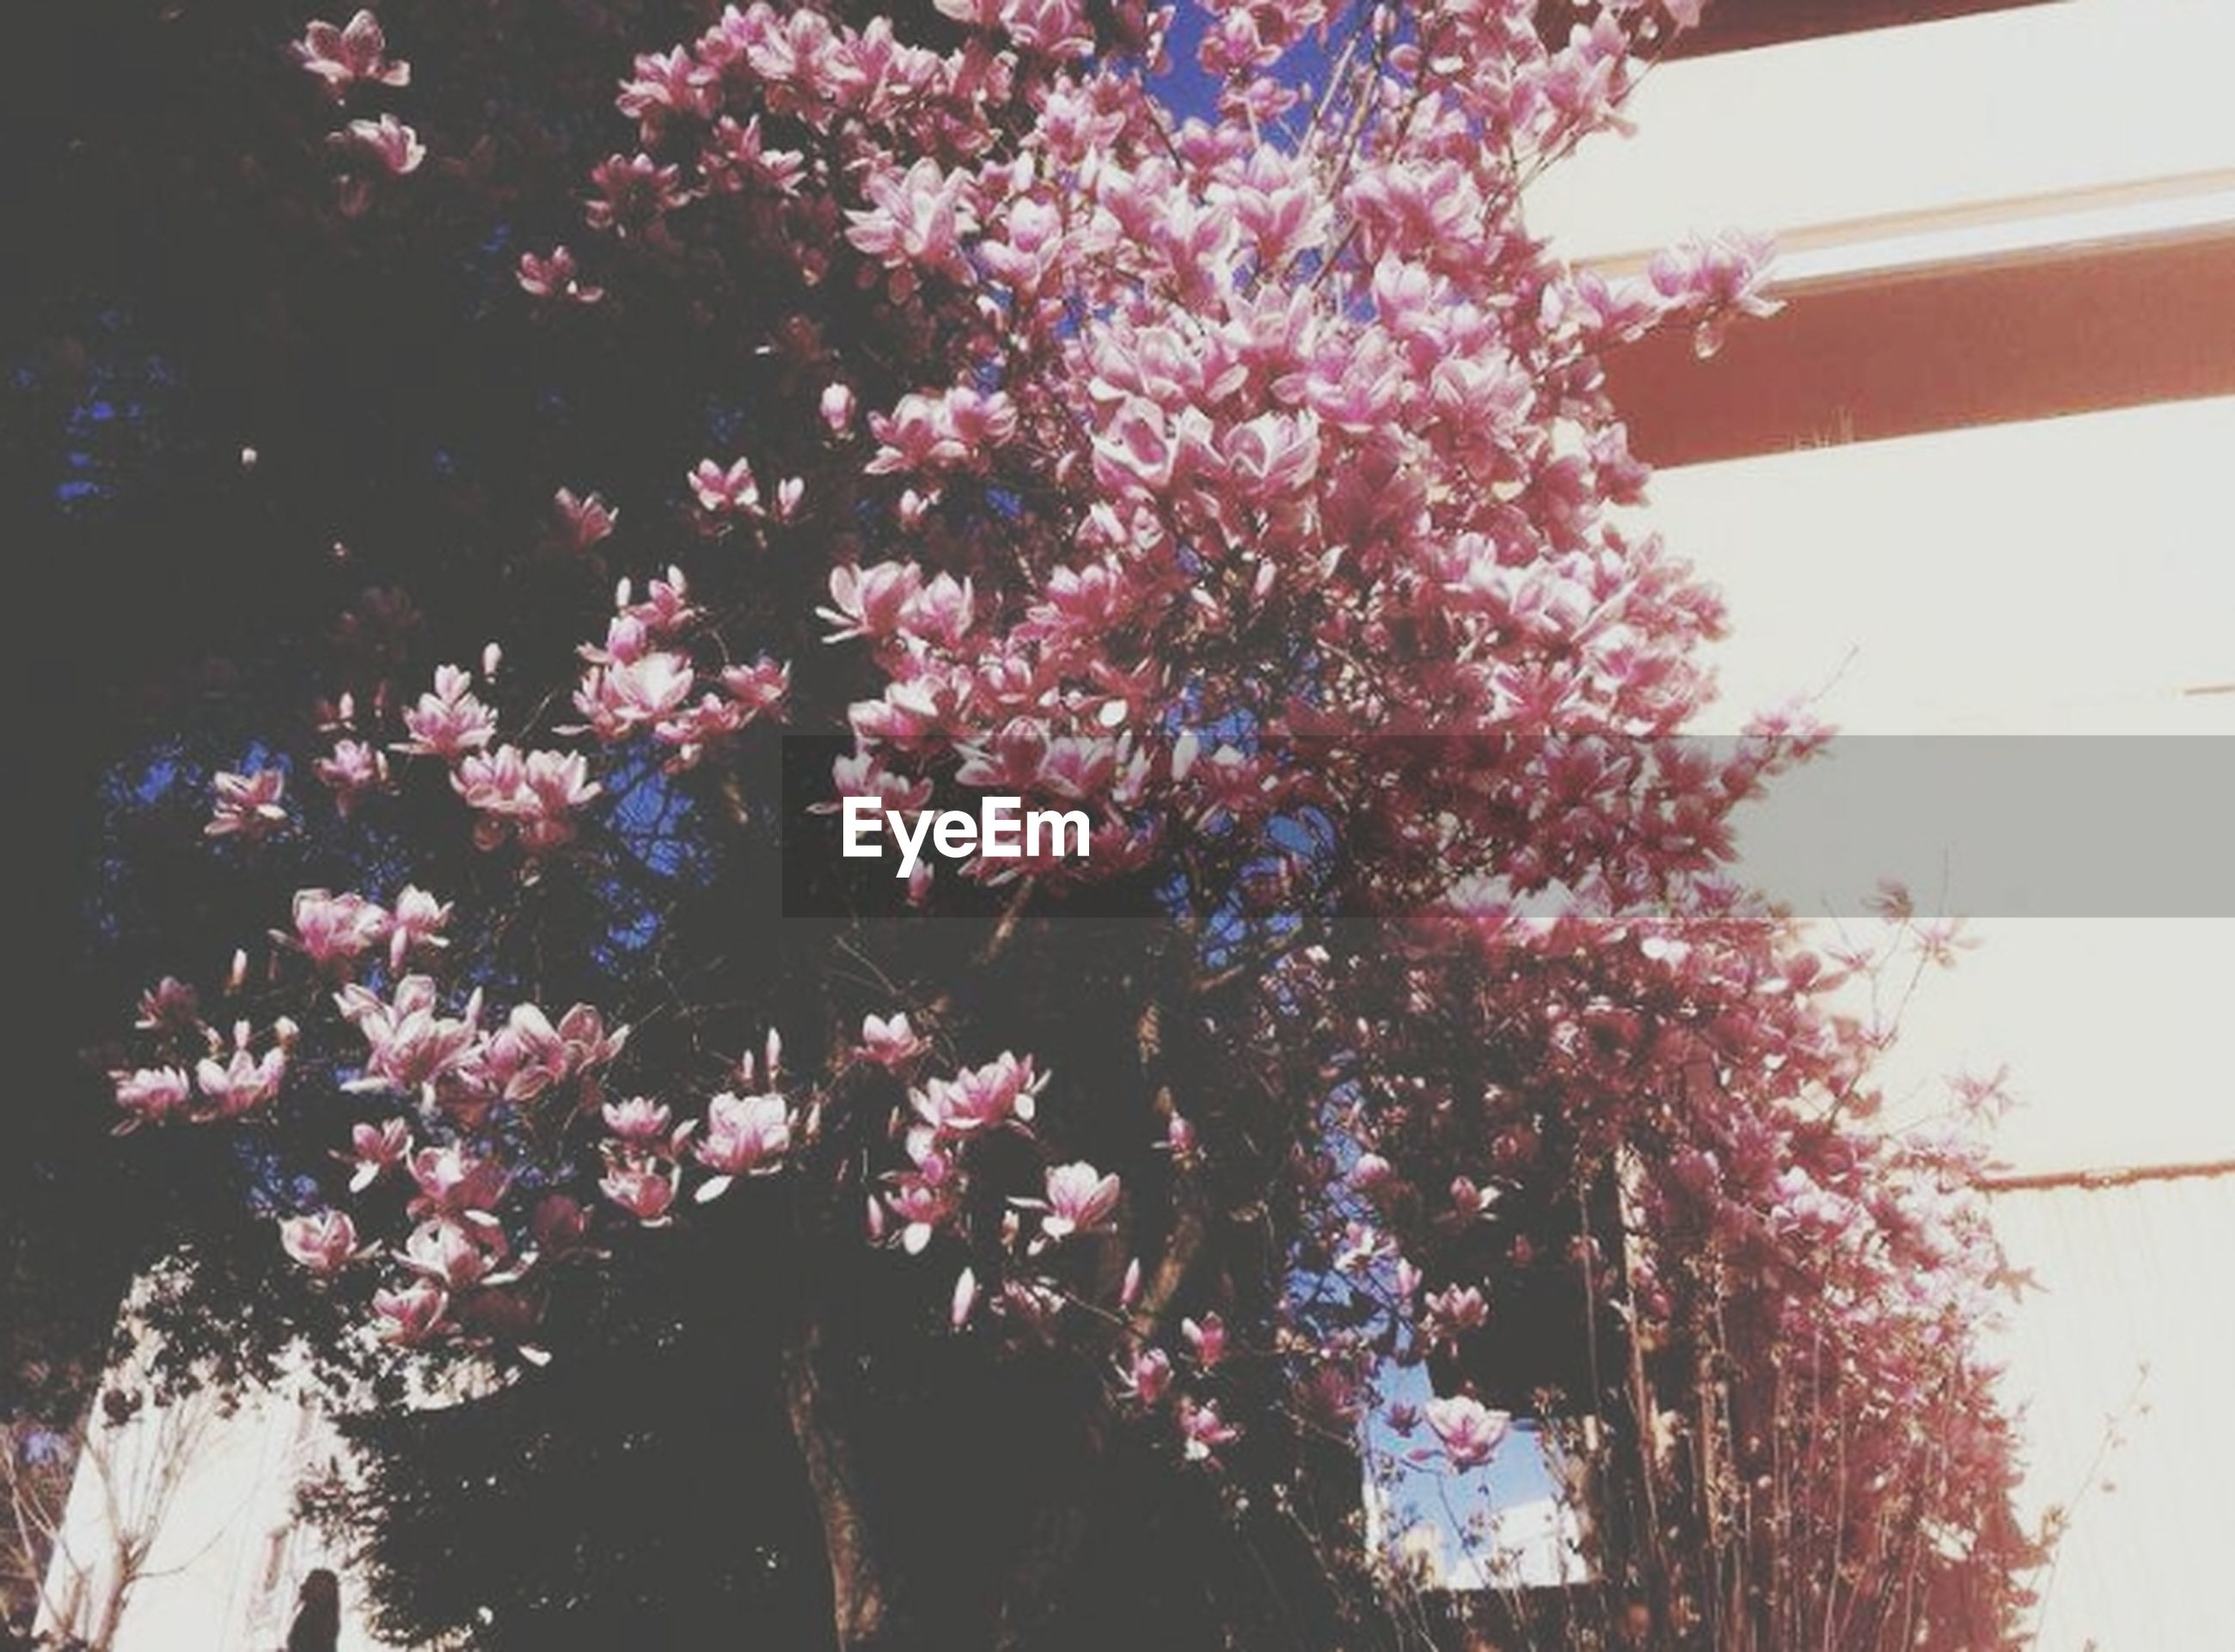 tree, flower, growth, low angle view, branch, beauty in nature, nature, freshness, pink color, outdoors, no people, day, tranquility, plant, in bloom, sunlight, blossom, park - man made space, sky, fragility